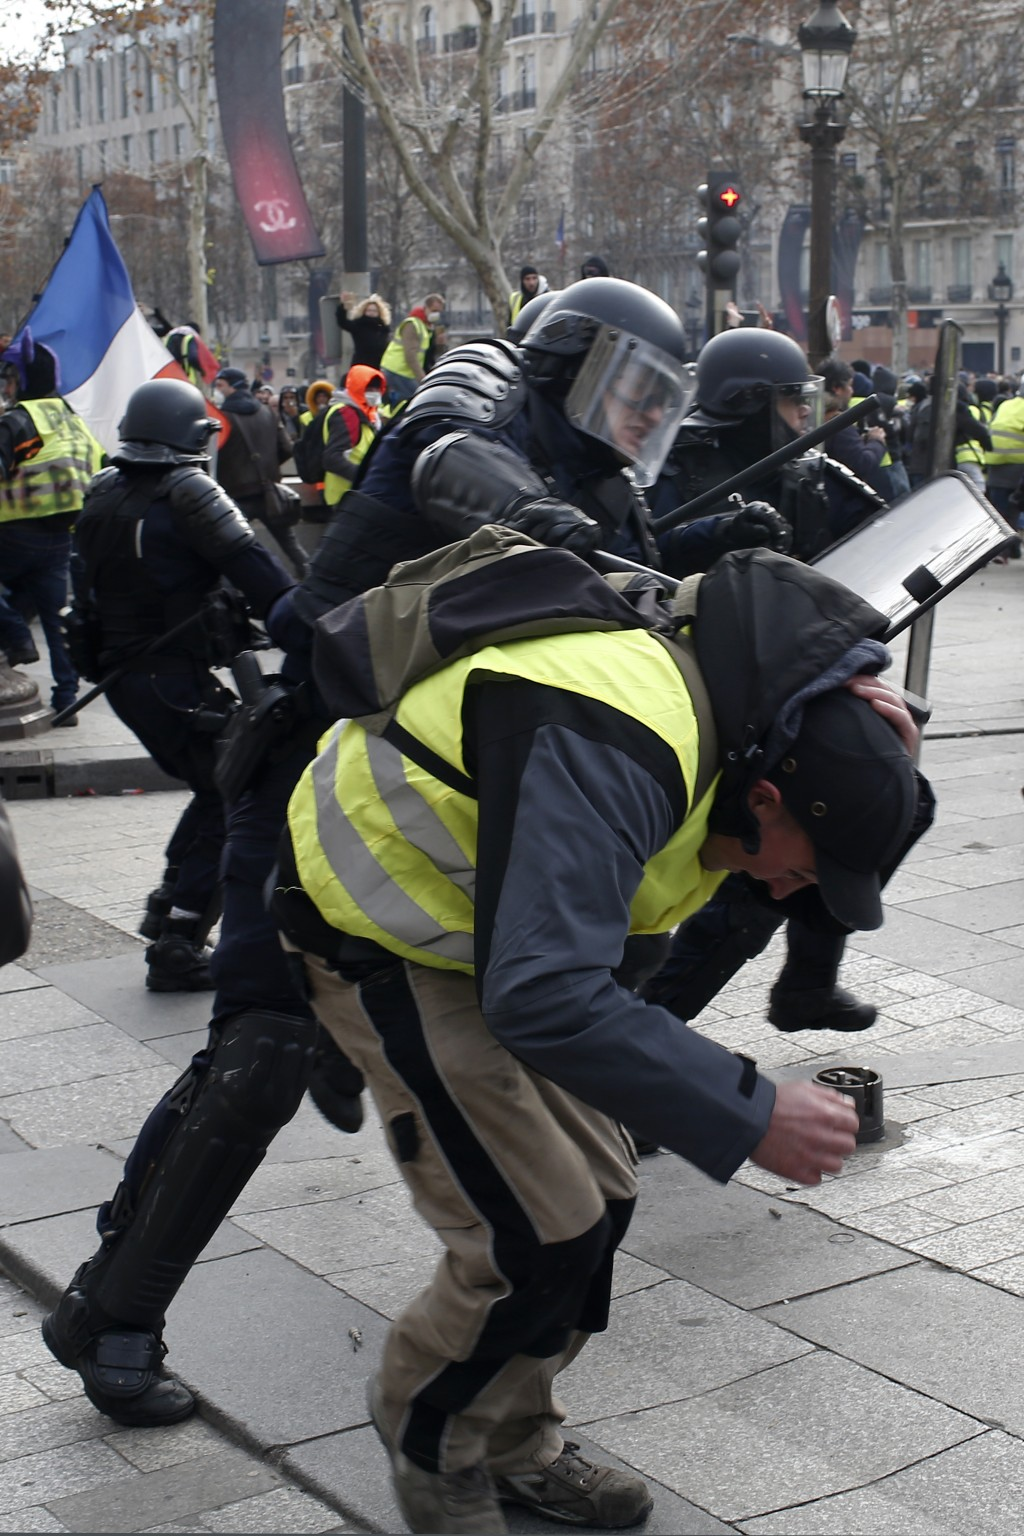 A riot police officer beats a demonstrator on the Champs-Elysees avenue Saturday, Dec. 8, 2018 in Paris. Crowds of yellow-vested protesters angry at P